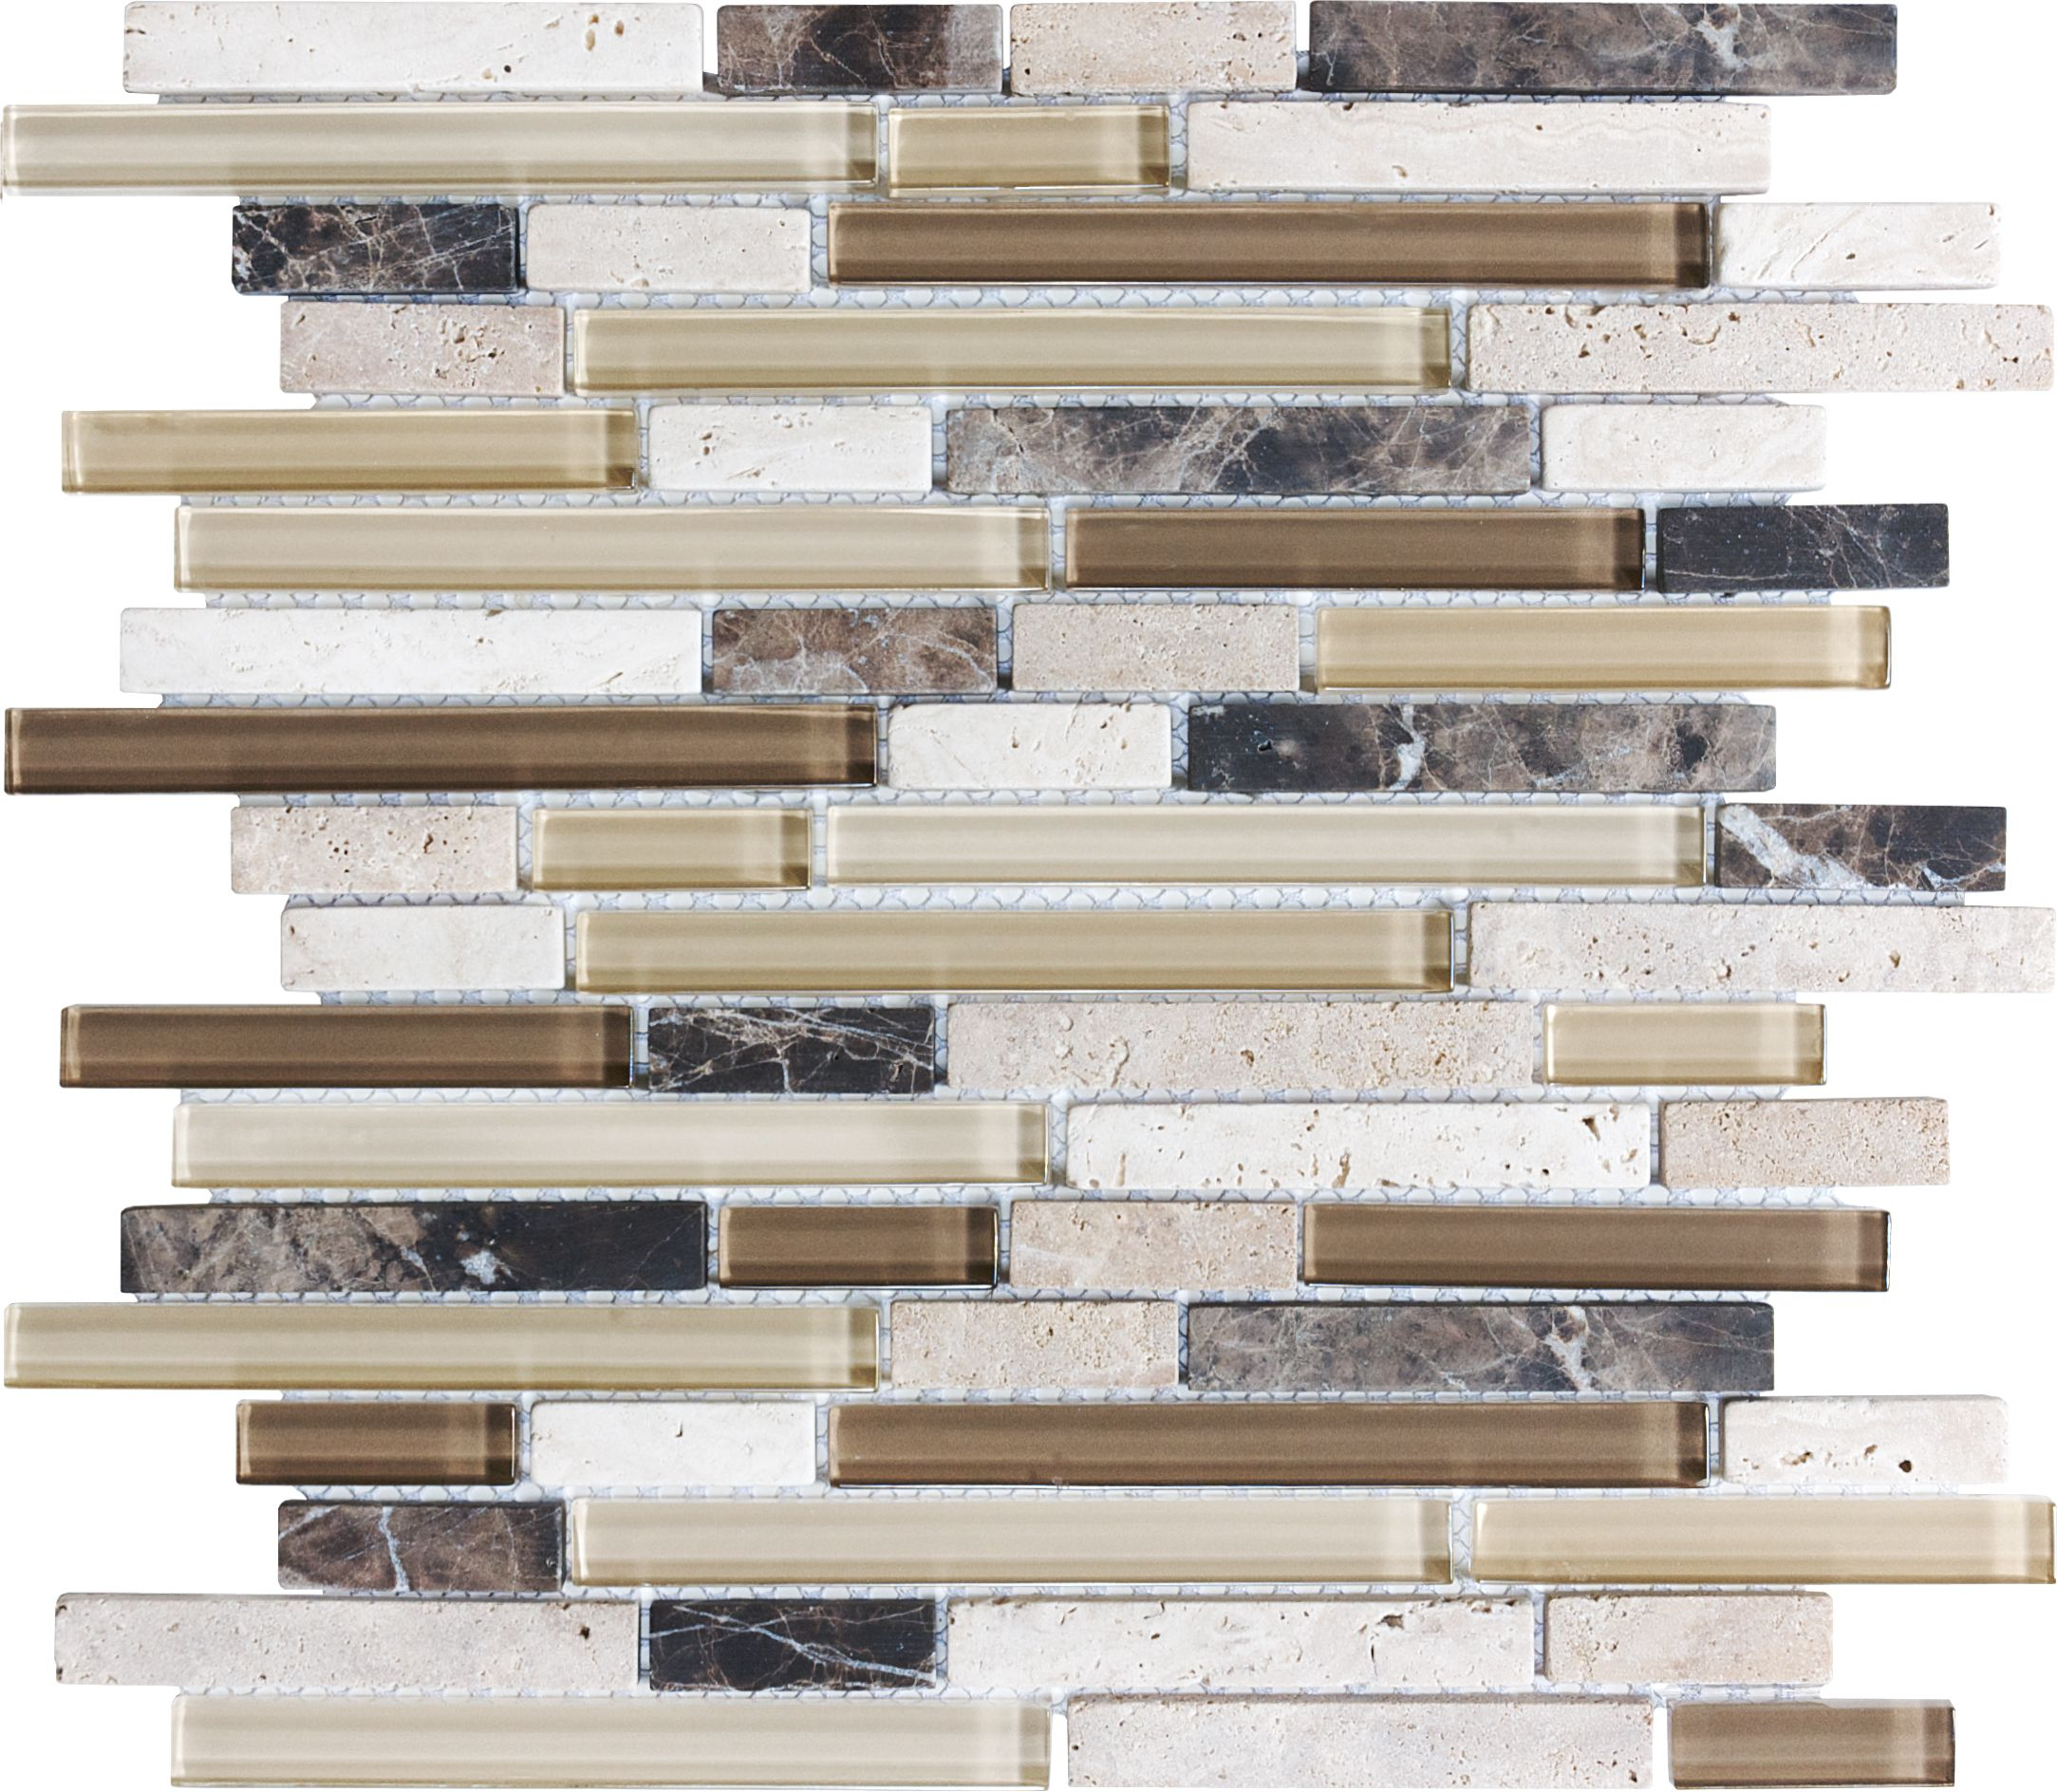 Glass stone mosaic kitchen backsplash photo marazzi pictures to pin on - Anatolia Tile Java Linear Mosaic Stone And Glass Wall Tile Common 12 In